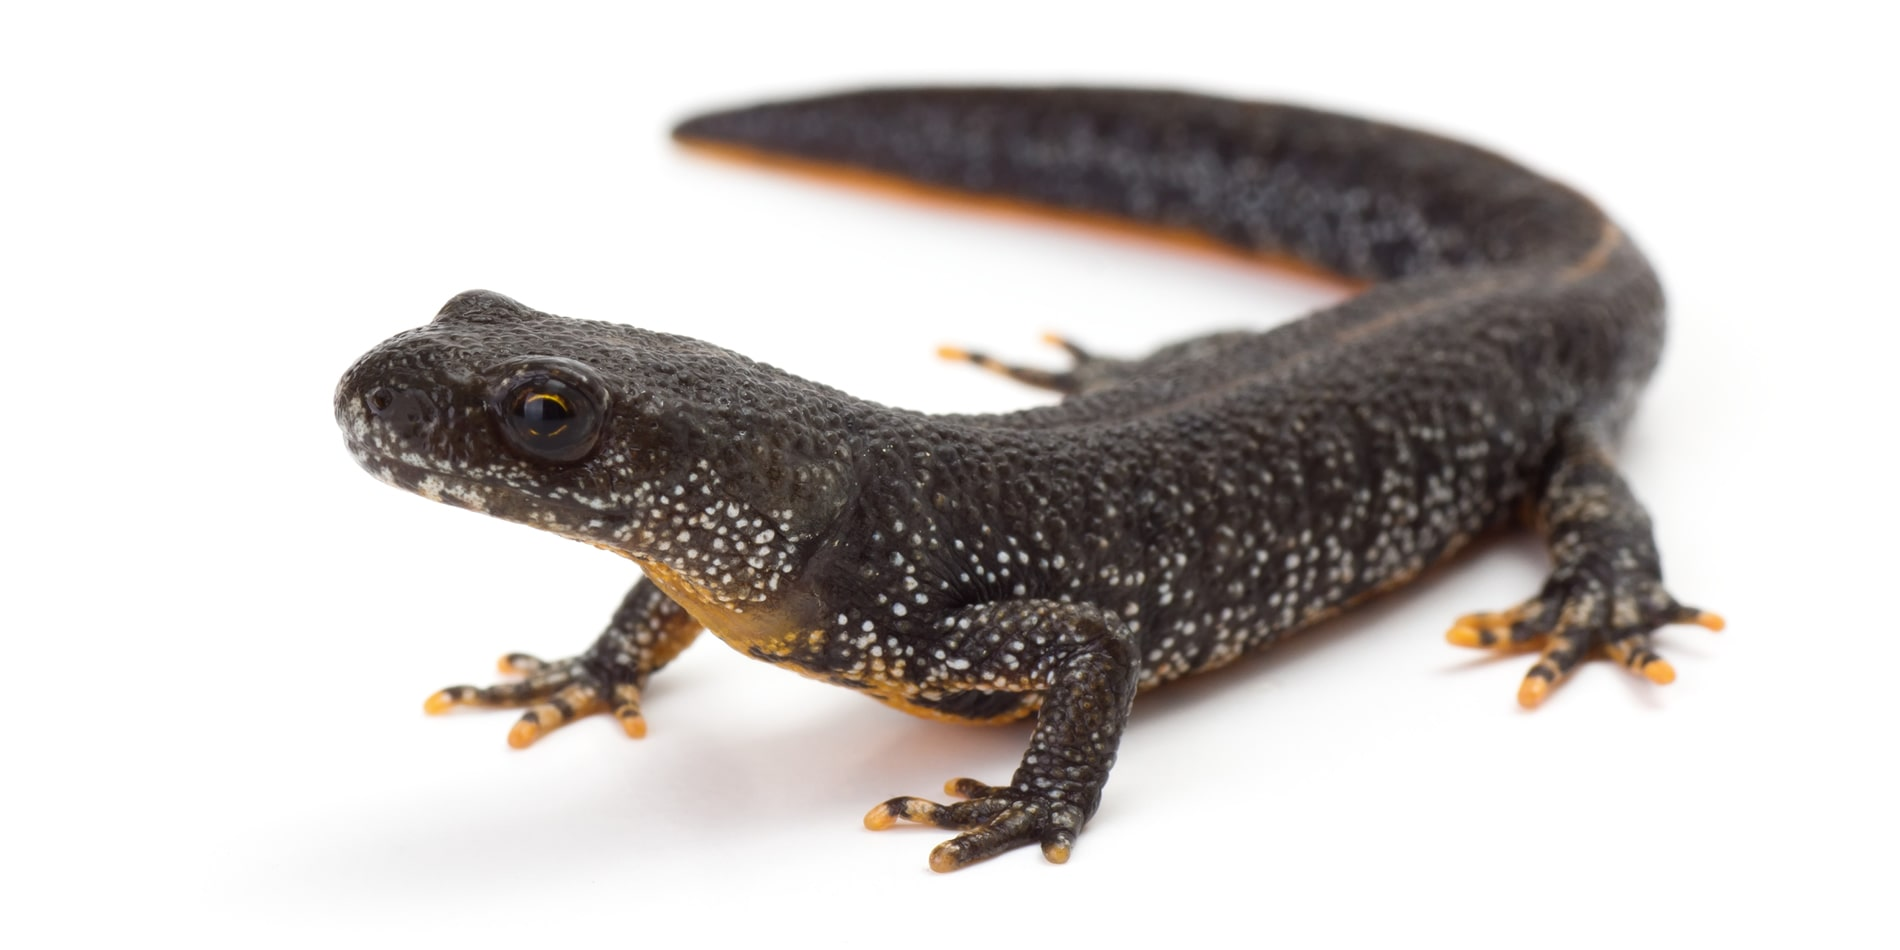 eDNA Great Crested Newt